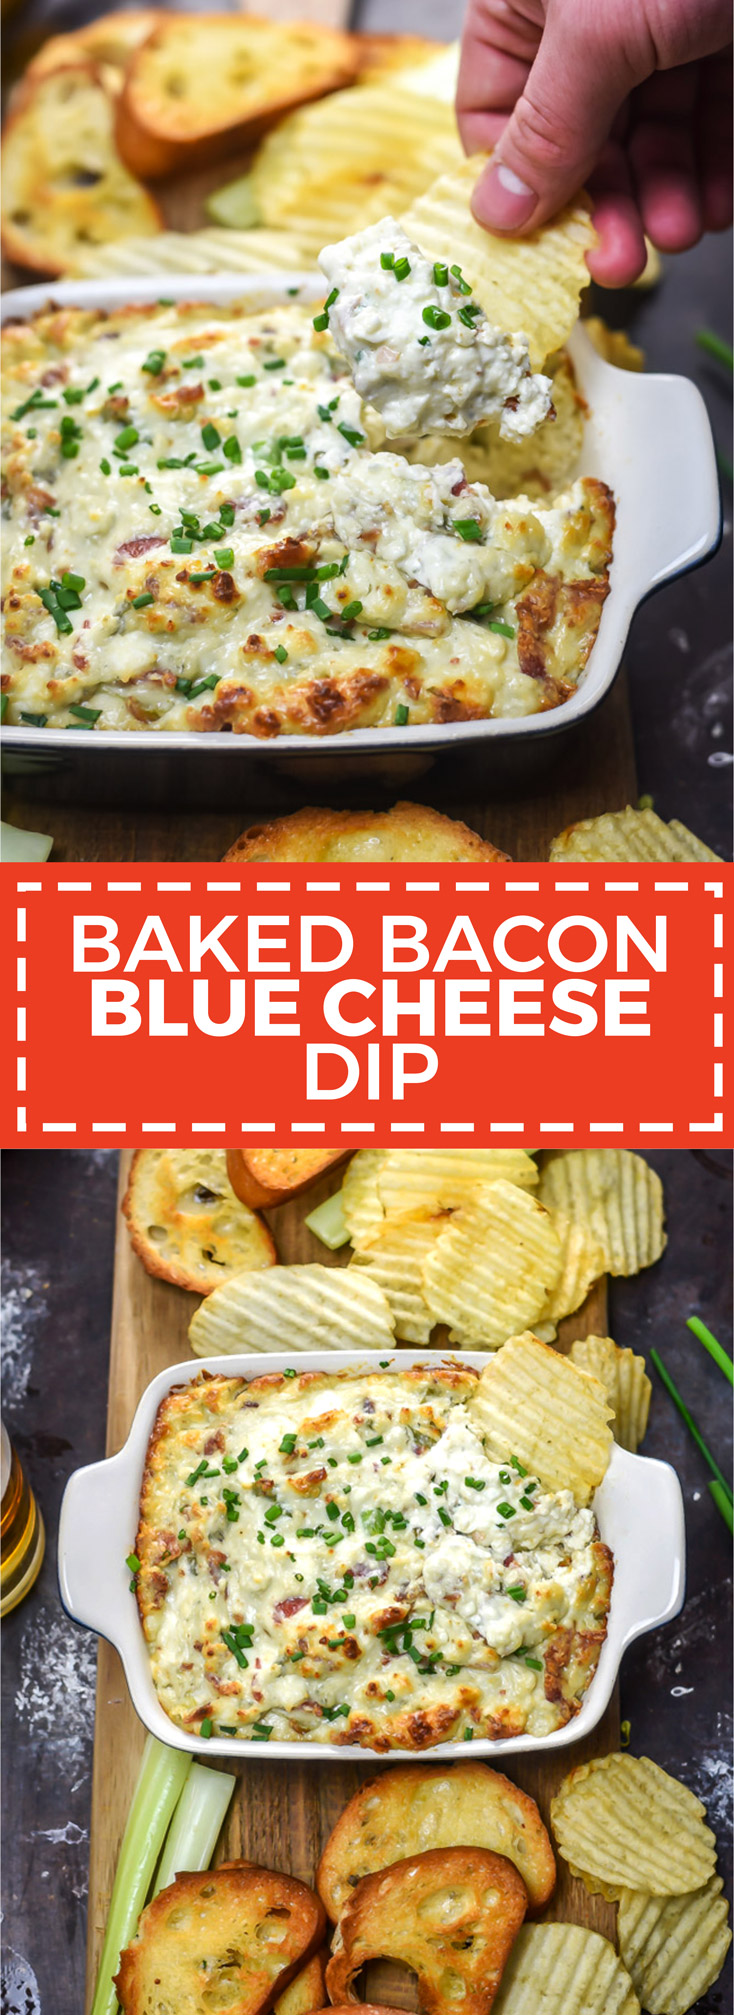 Baked Bacon Blue Cheese Dip. This tangy, creamy, rich, and savory dip requires only 6 ingredients for a warm and cheesy addition to your appetizer spread. | hostthetoast.com